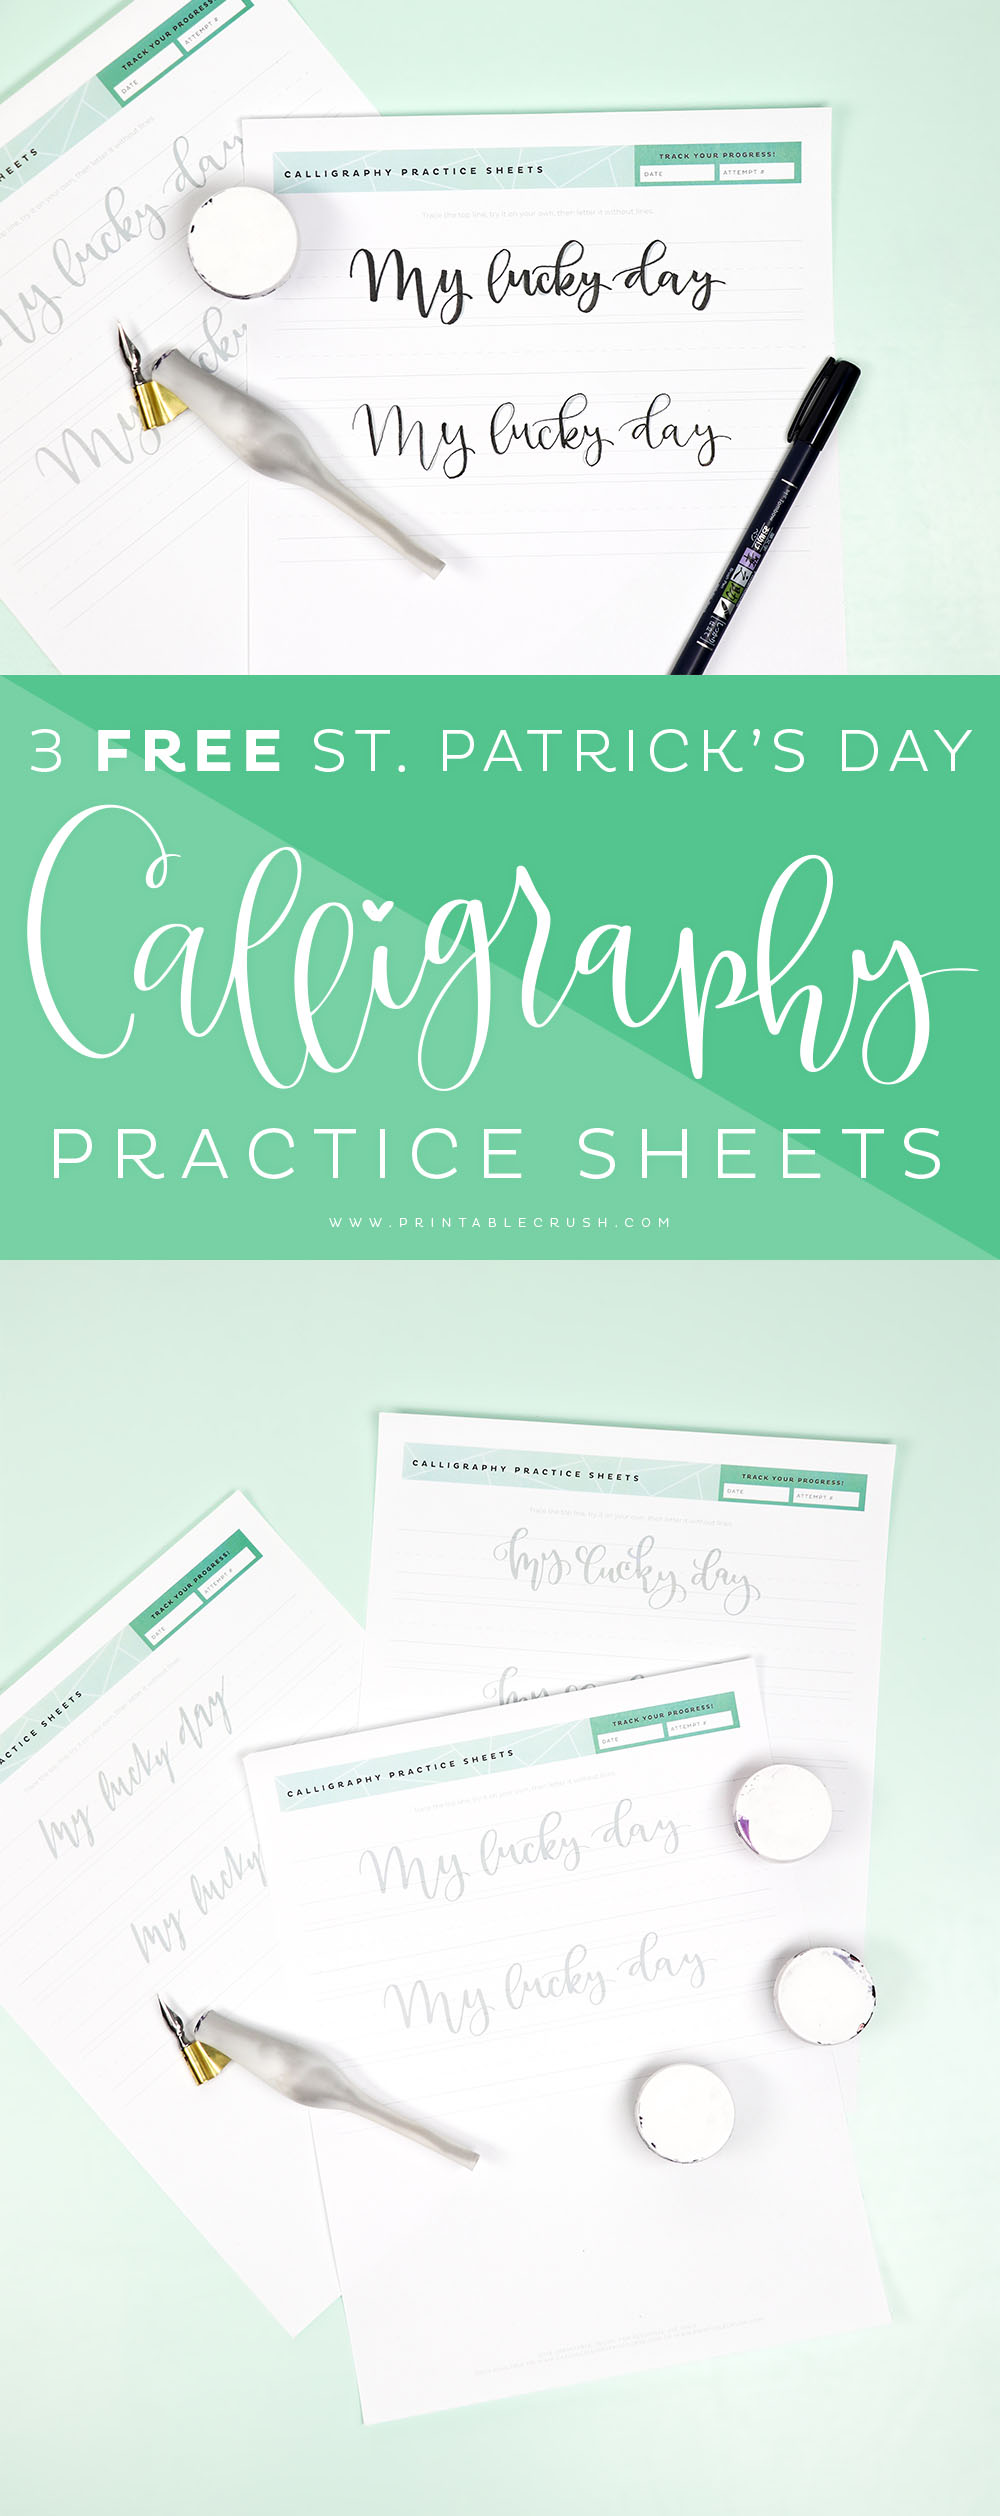 Practice your calligraphy with these 3 FREE St. Patrick's Day Calligraphy Practice Sheets! #casualcalligraphy #calligraphy #moderncalligraphy #calligraphypen #tombowpro #stpatricksday via @printablecrush